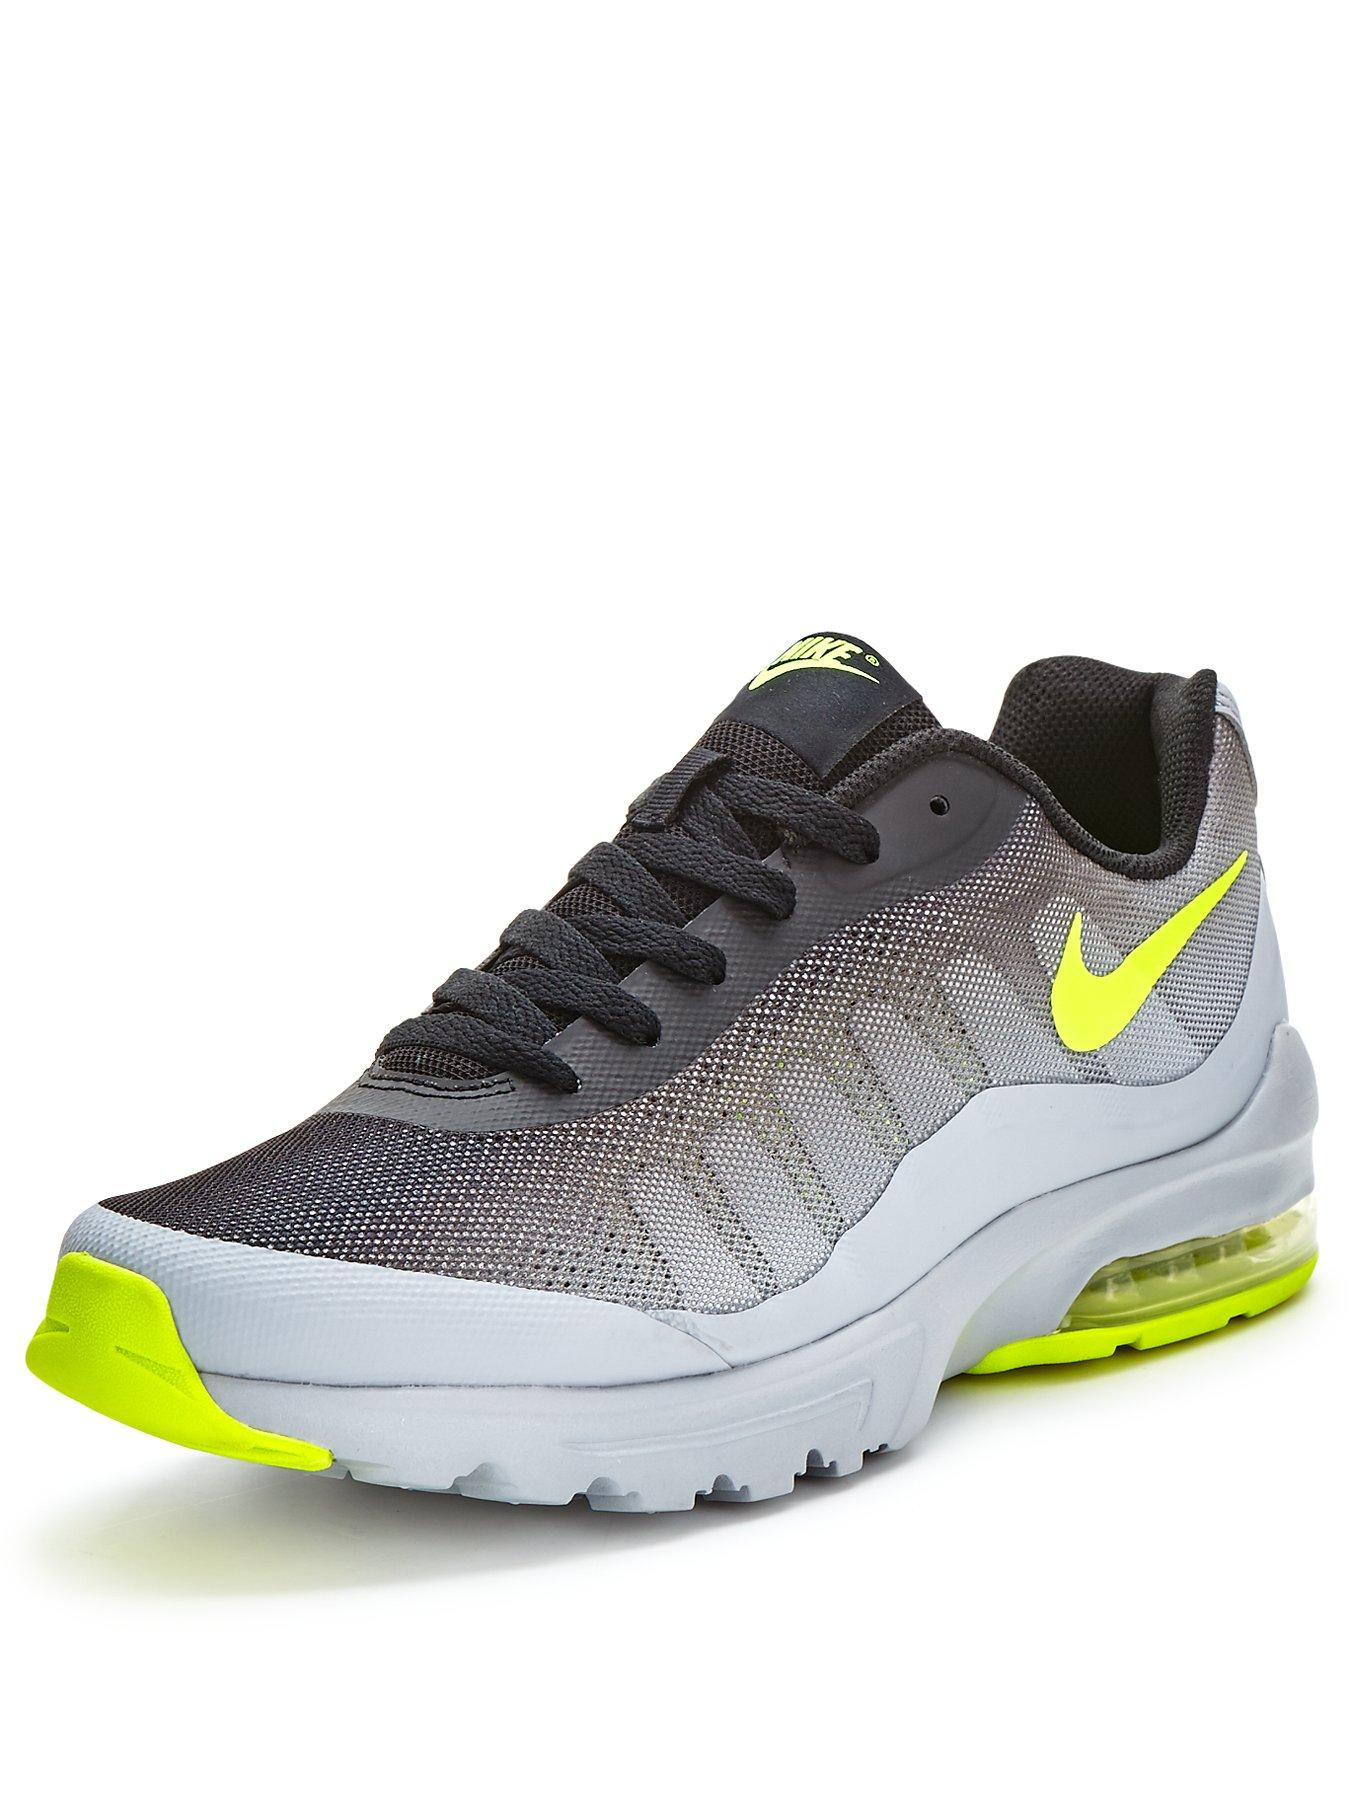 Sale | NIKE Trainers - Men - Shop online for Sale | NIKE Trainers - Men with JD Sports, the UK's leading sports fashion retailer.